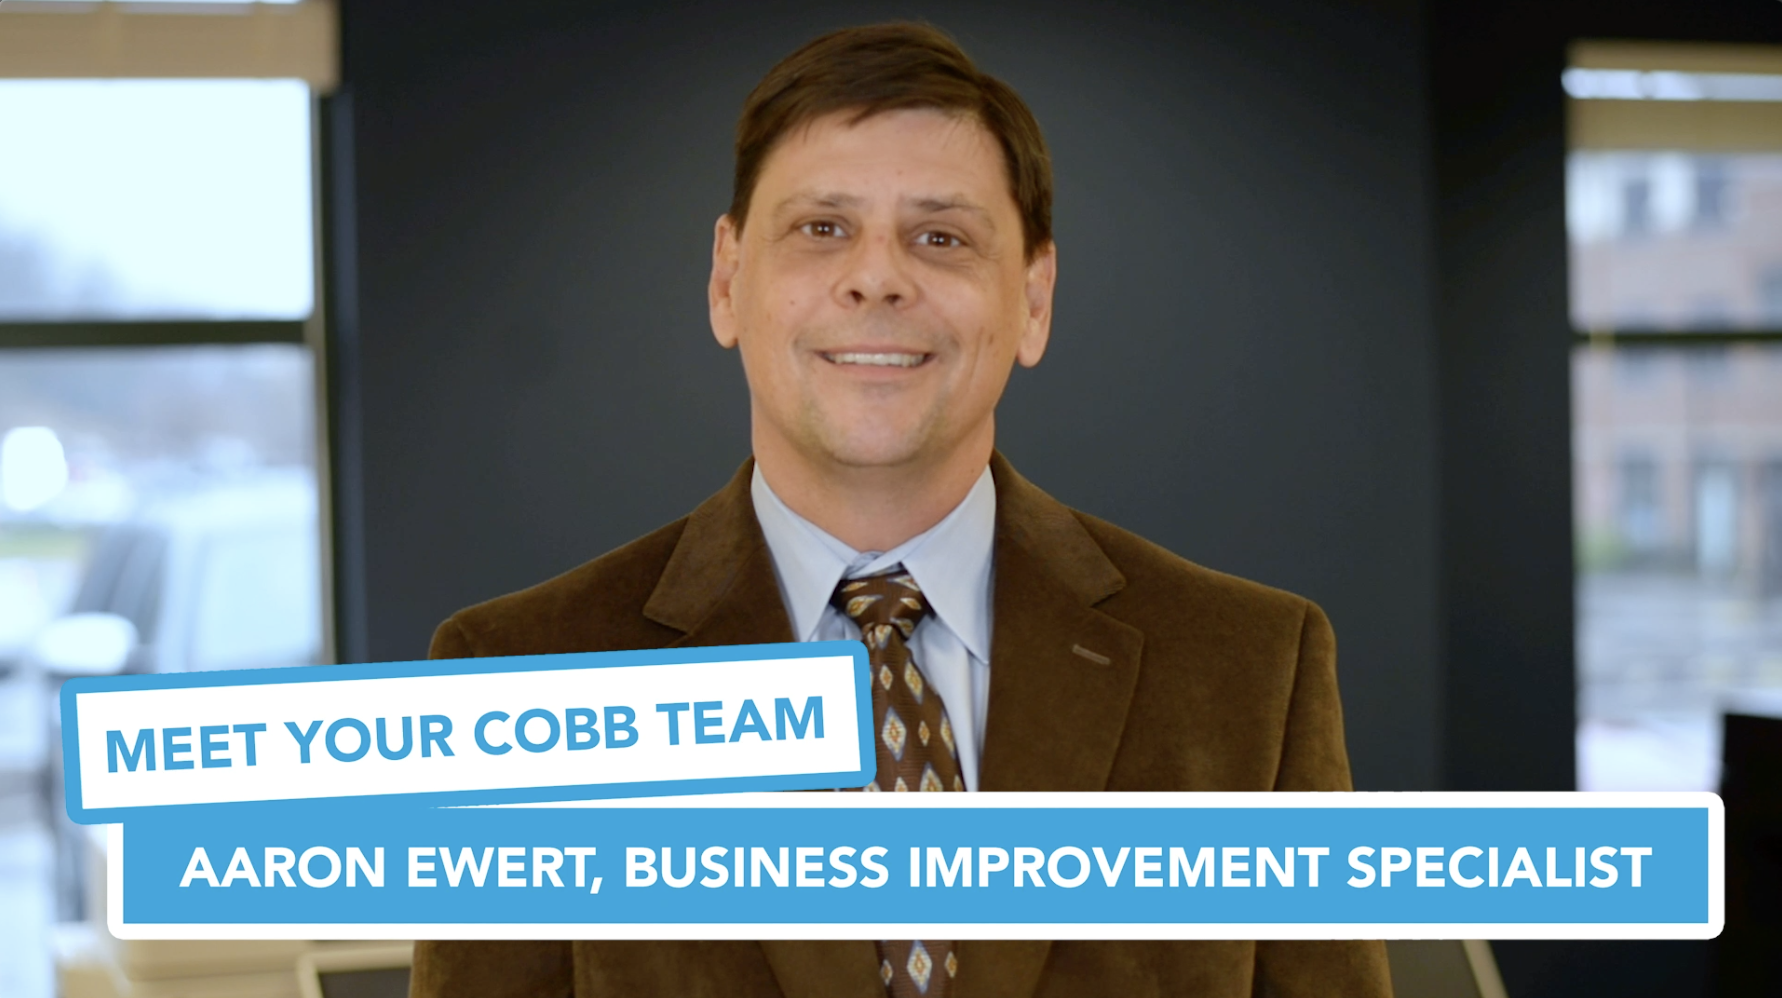 Meet Your Cobb Team Aaron Ewert, Business Improvement Specialist